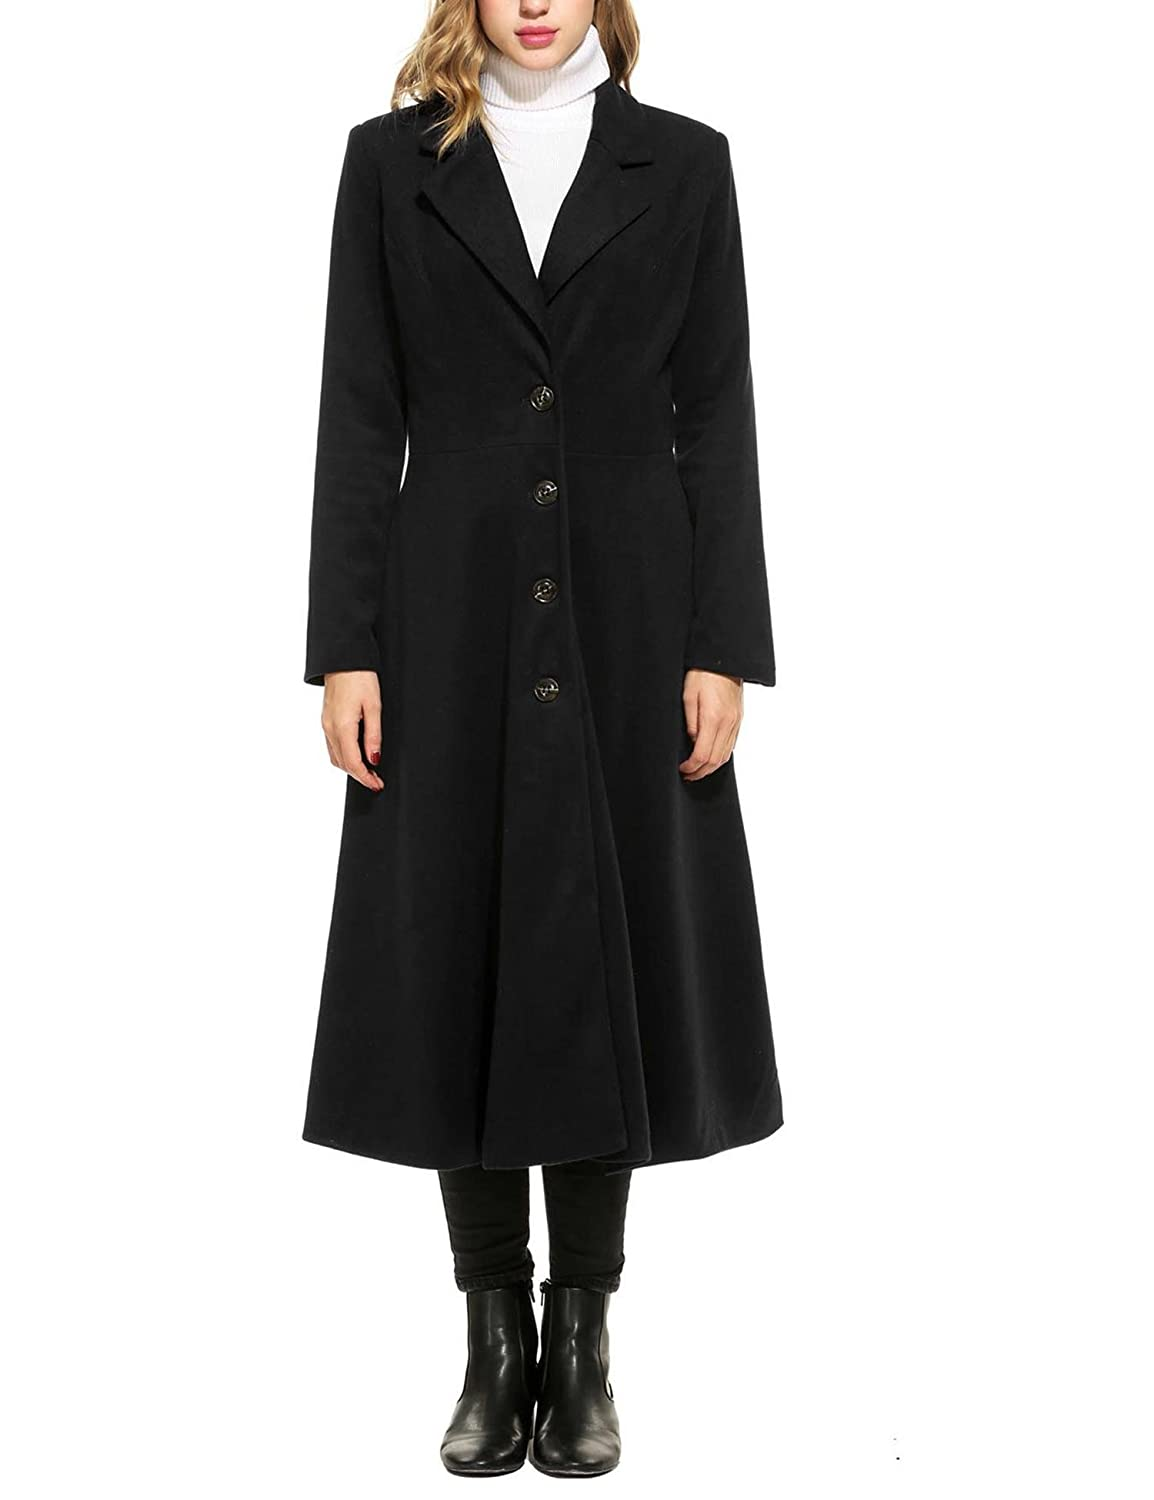 1940s Style Coats and Jackets for Sale Mofavor Women Long Trench Coat Single Breasted Casual Swing Coat Overcoat Wool Pea Coat $55.89 AT vintagedancer.com